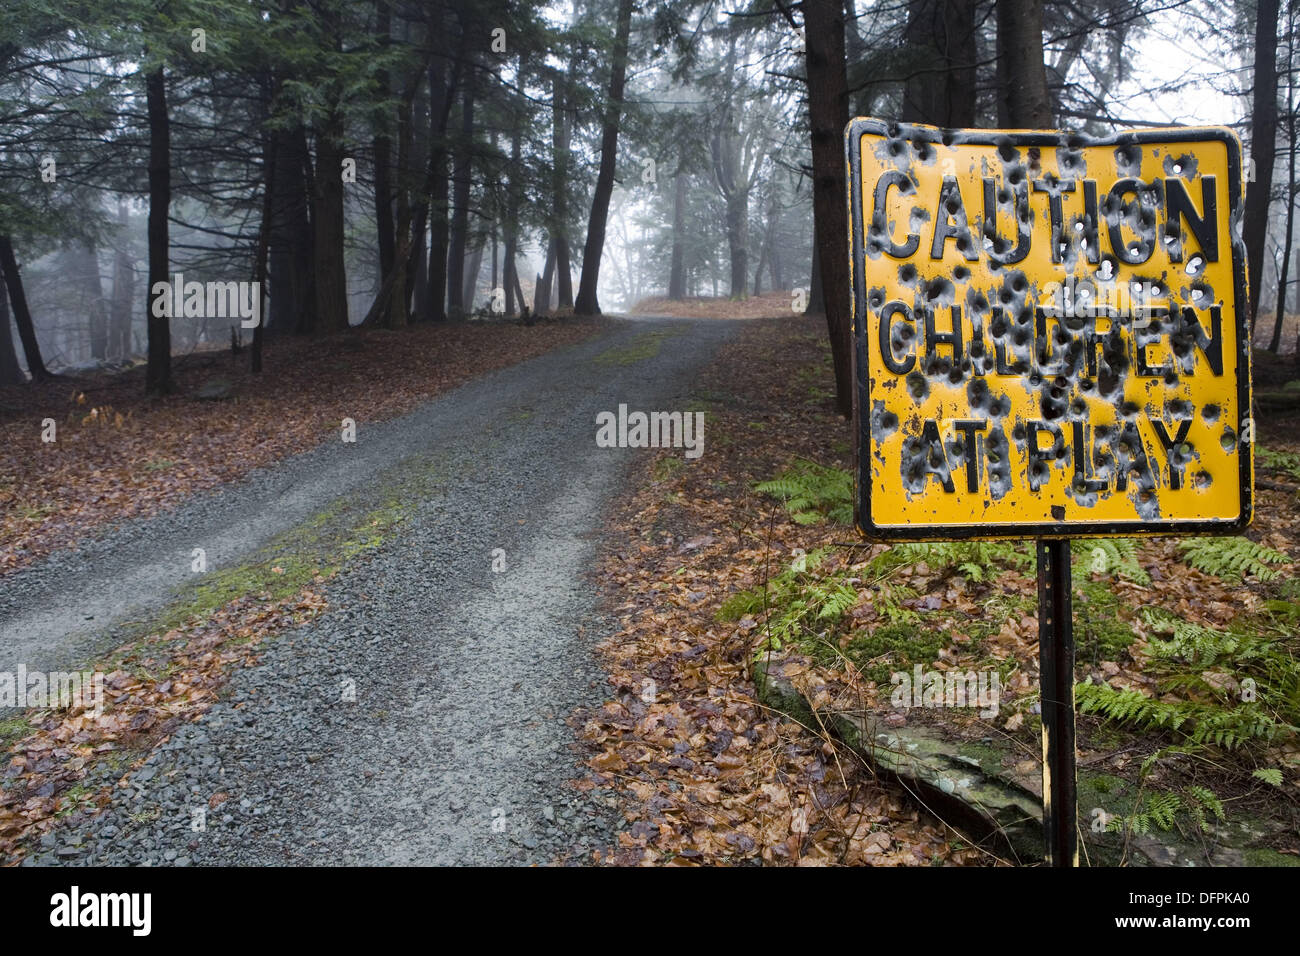 [Image: country-road-sign-shot-up-with-bullet-holes-DFPKA0.jpg]